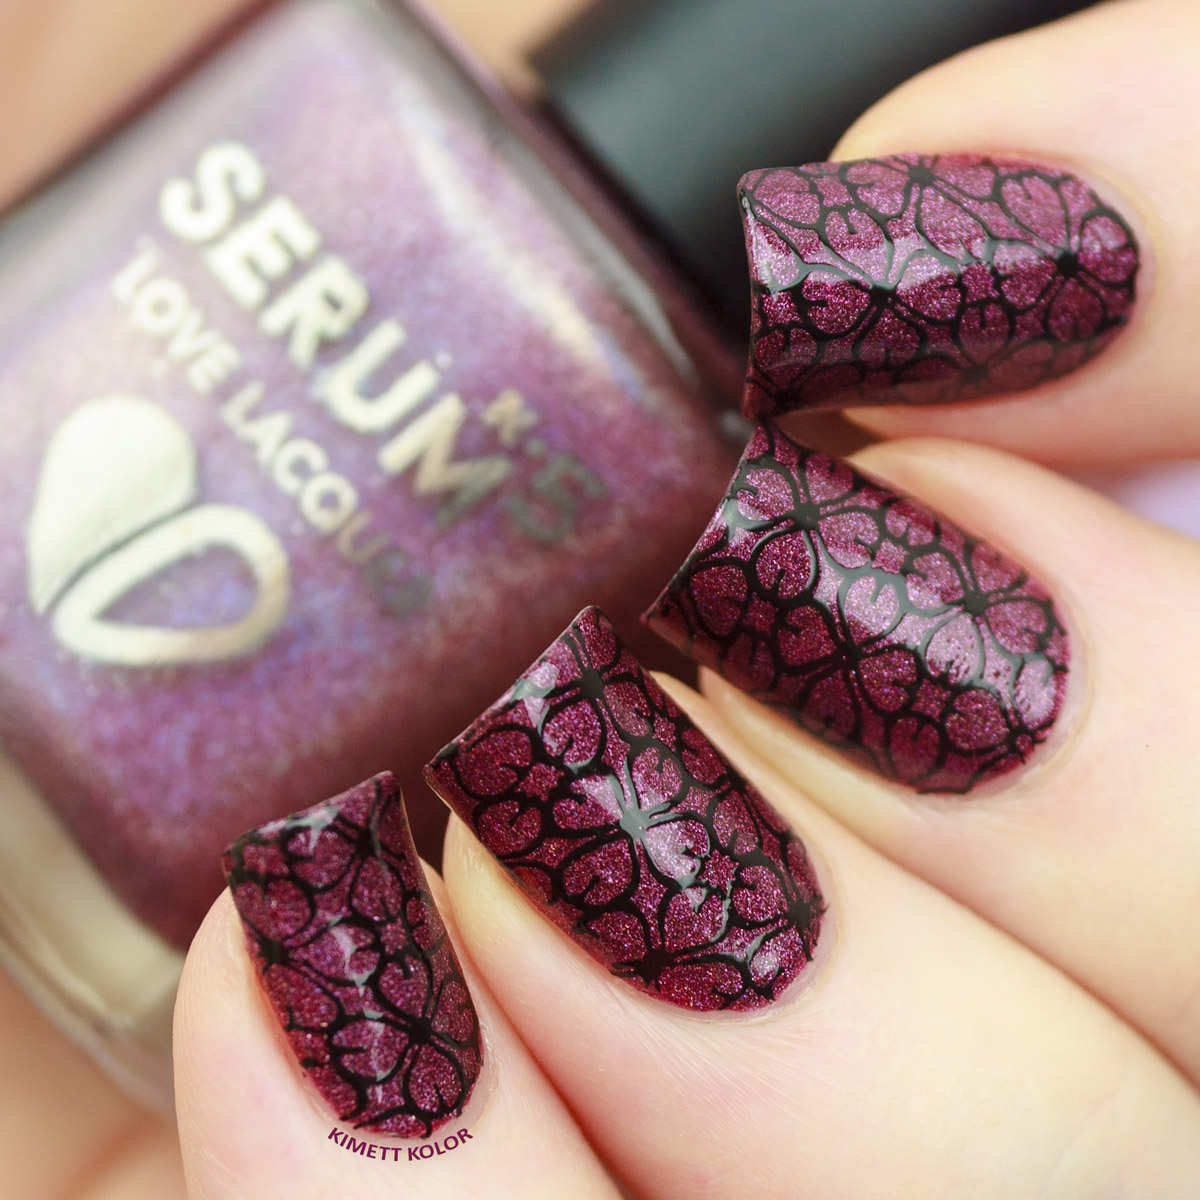 KimettKolor Simple Stamping Nail Art with Hit The Bottle and FabUrNails